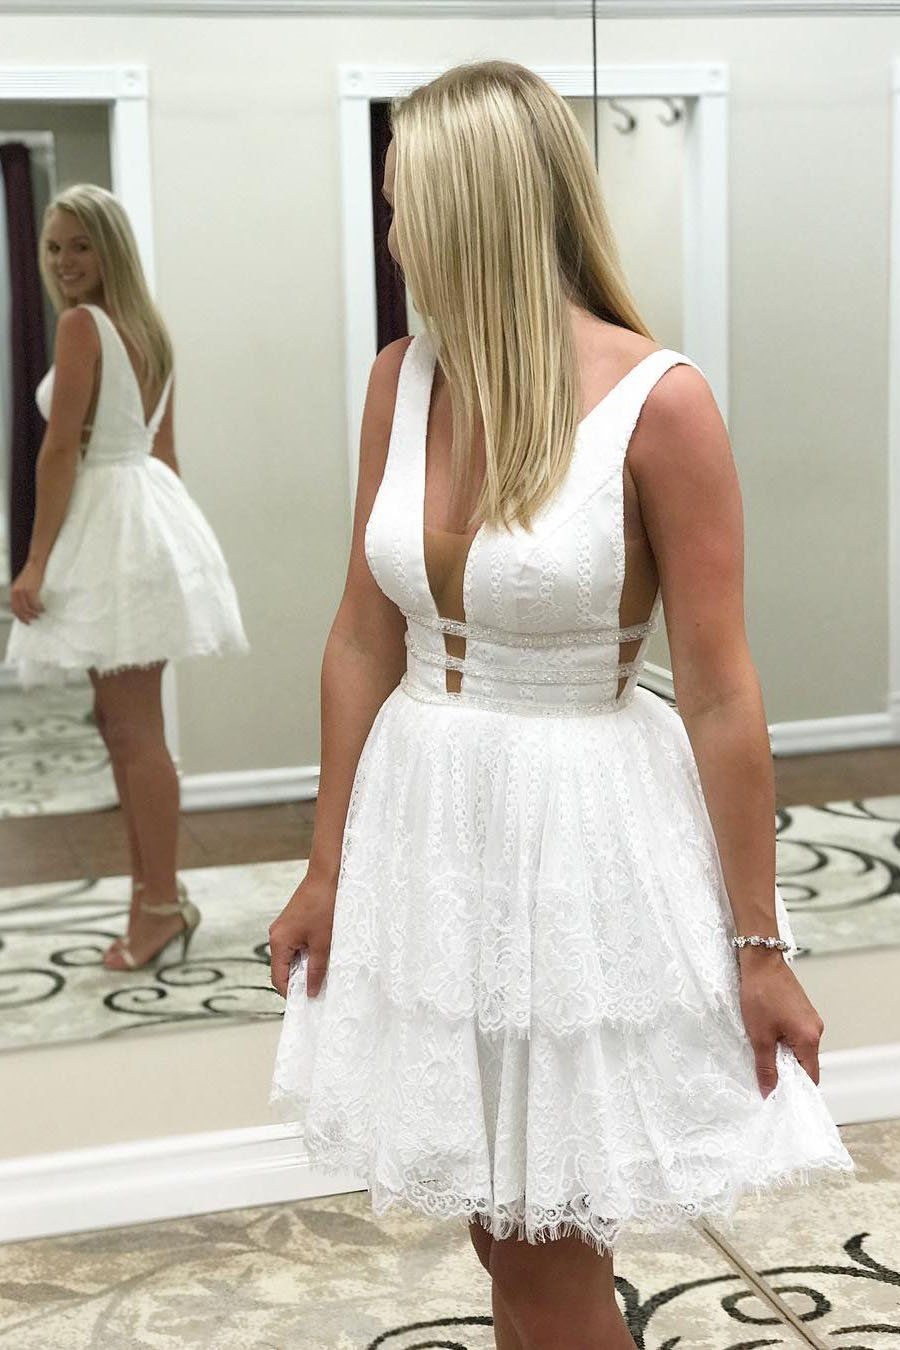 White Homecoming Dress Tiered Prom Dress Homecoming Dresses Short Elegant Homecoming Dresses [ 1350 x 900 Pixel ]